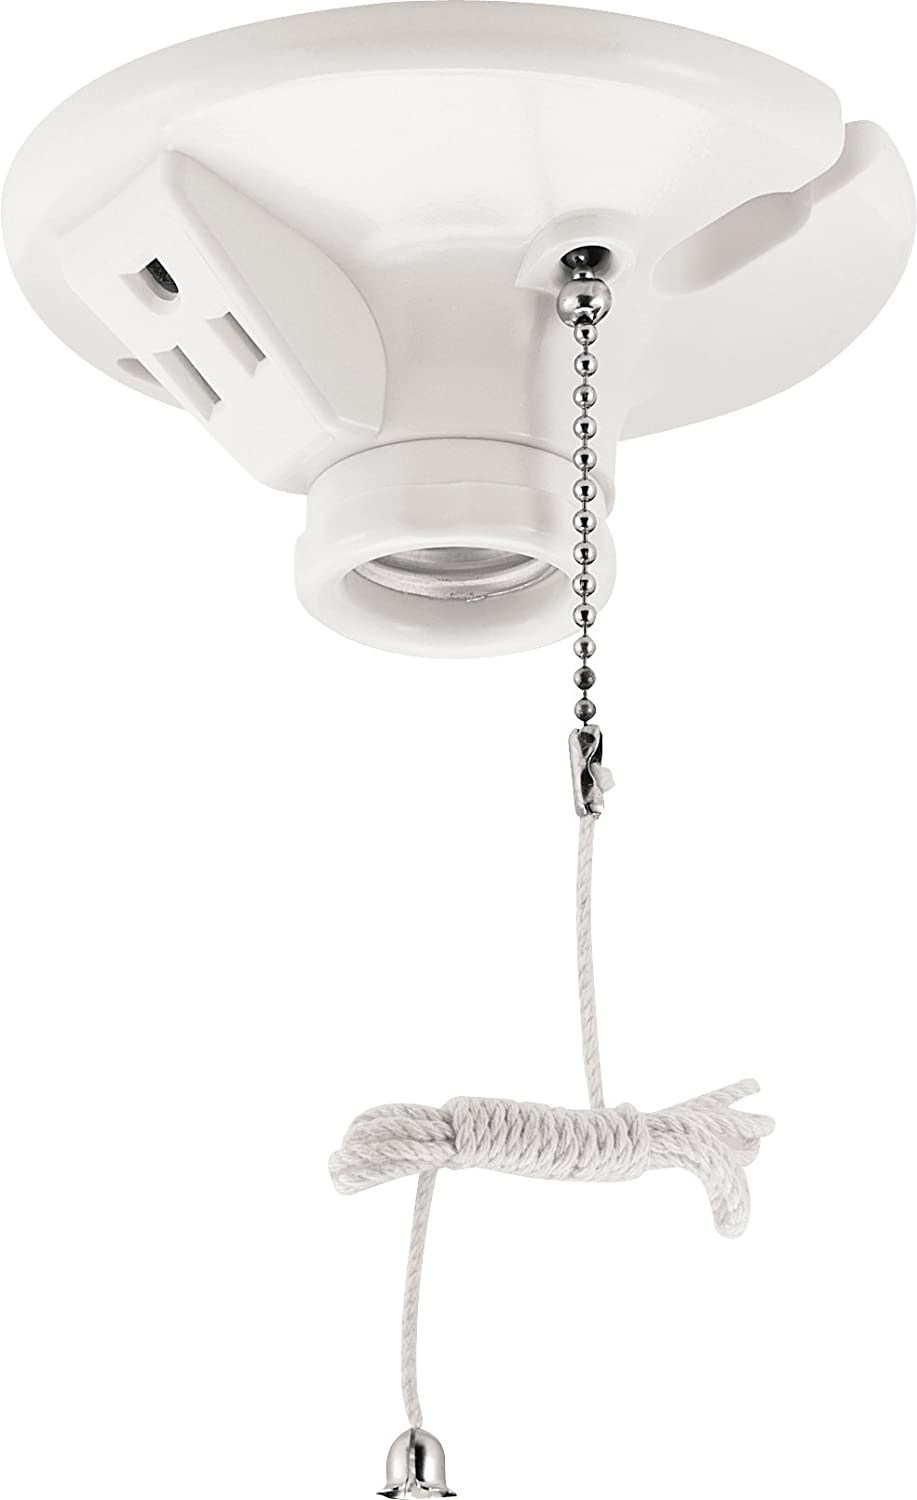 Prime Eaton Wiring S865W Sp L 660 Watt 250 Volt Two Piece Plastic Ceiling Wiring Digital Resources Xeirawoestevosnl